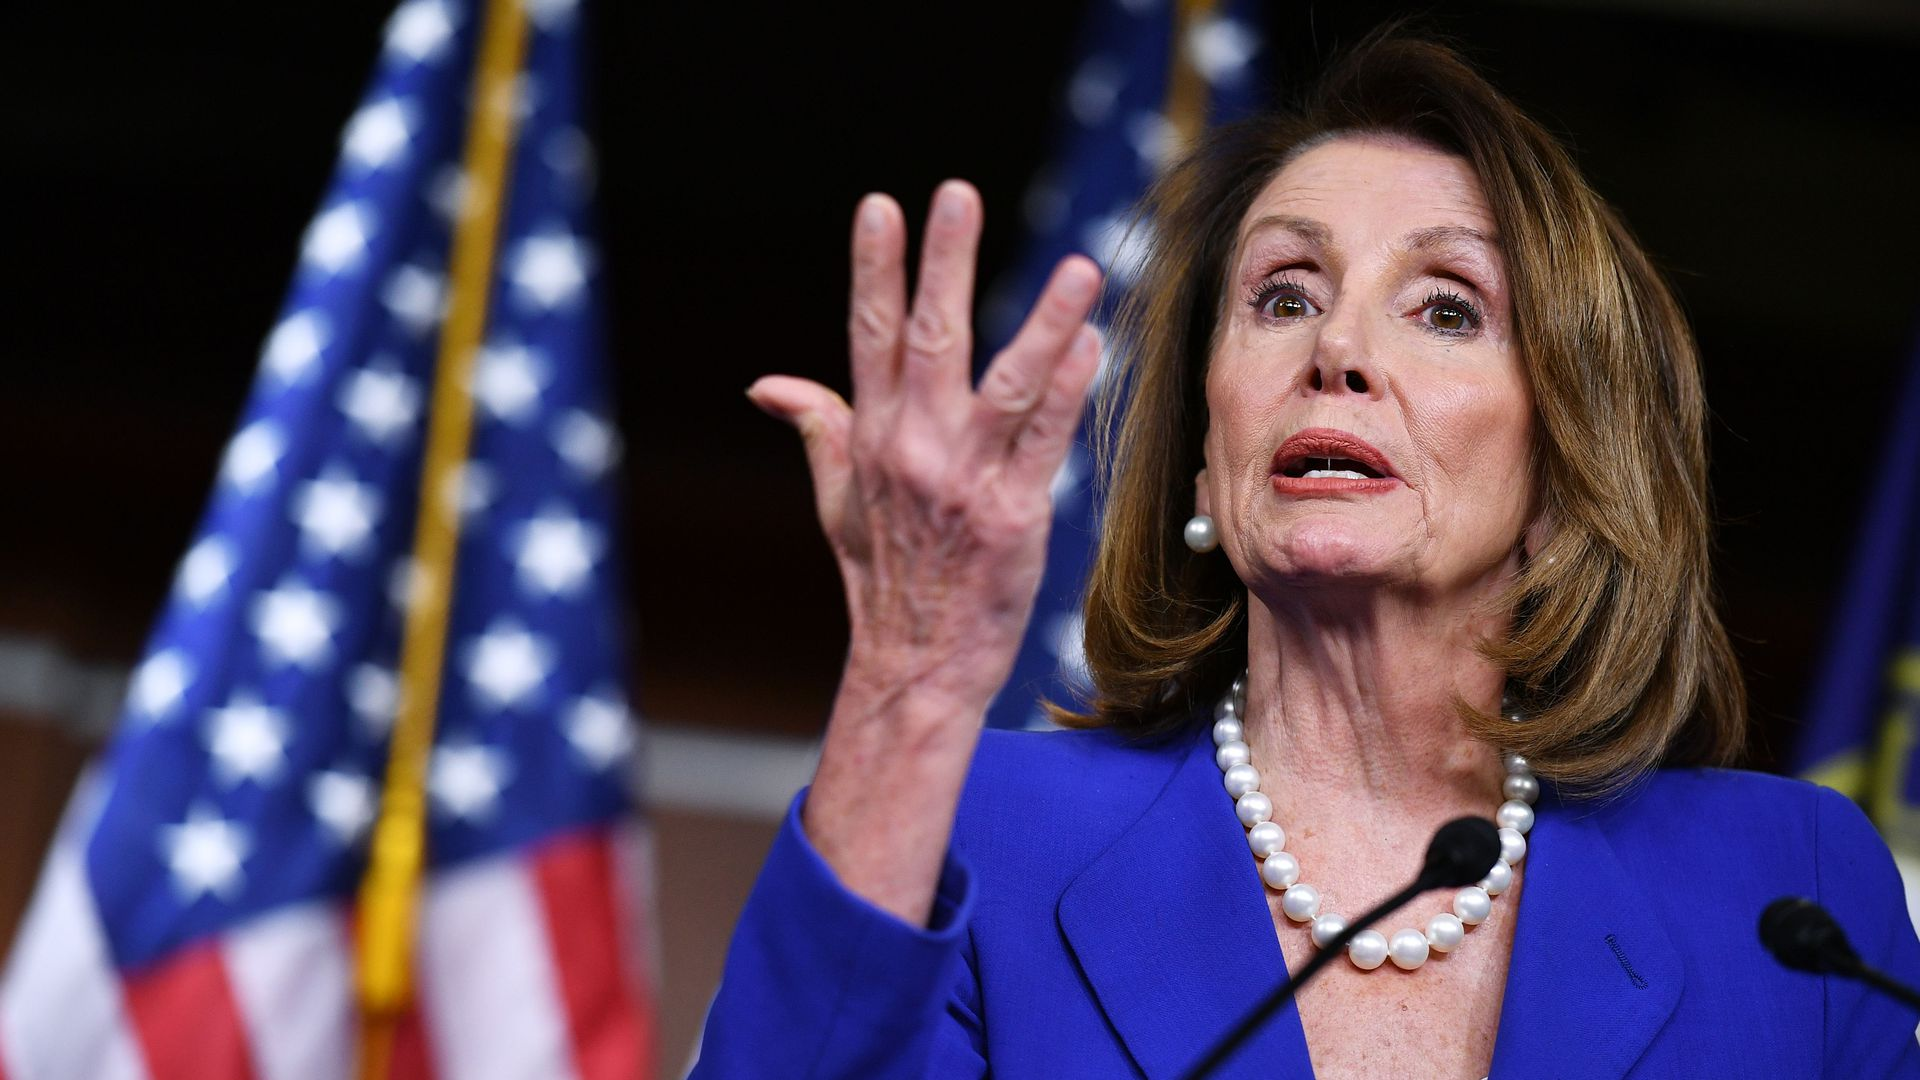 Pelosi: The path to health care for all is the Affordable Care Act, Not Medicare for All